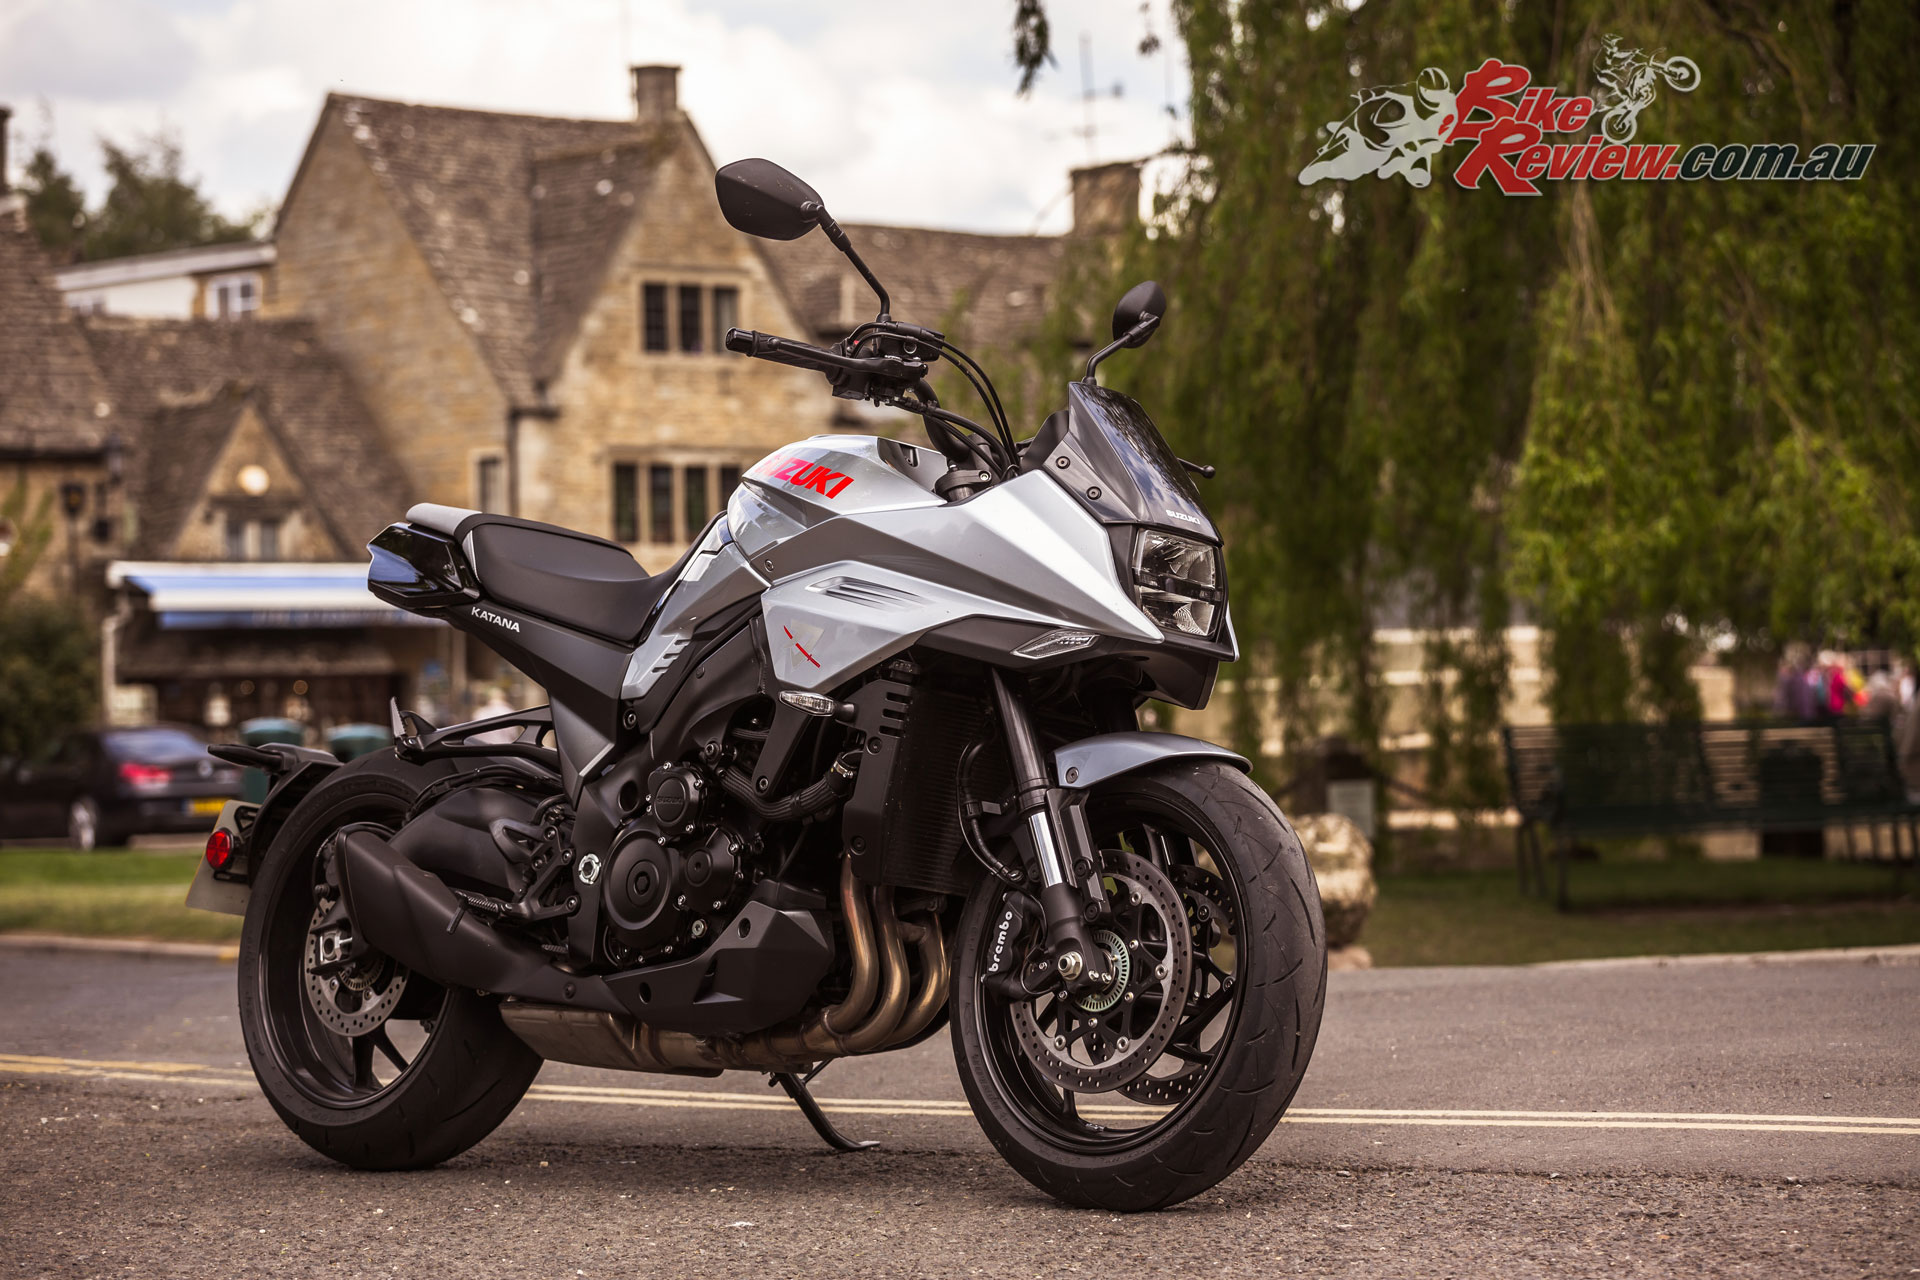 Performance is naturally a match to the GSX-S1000